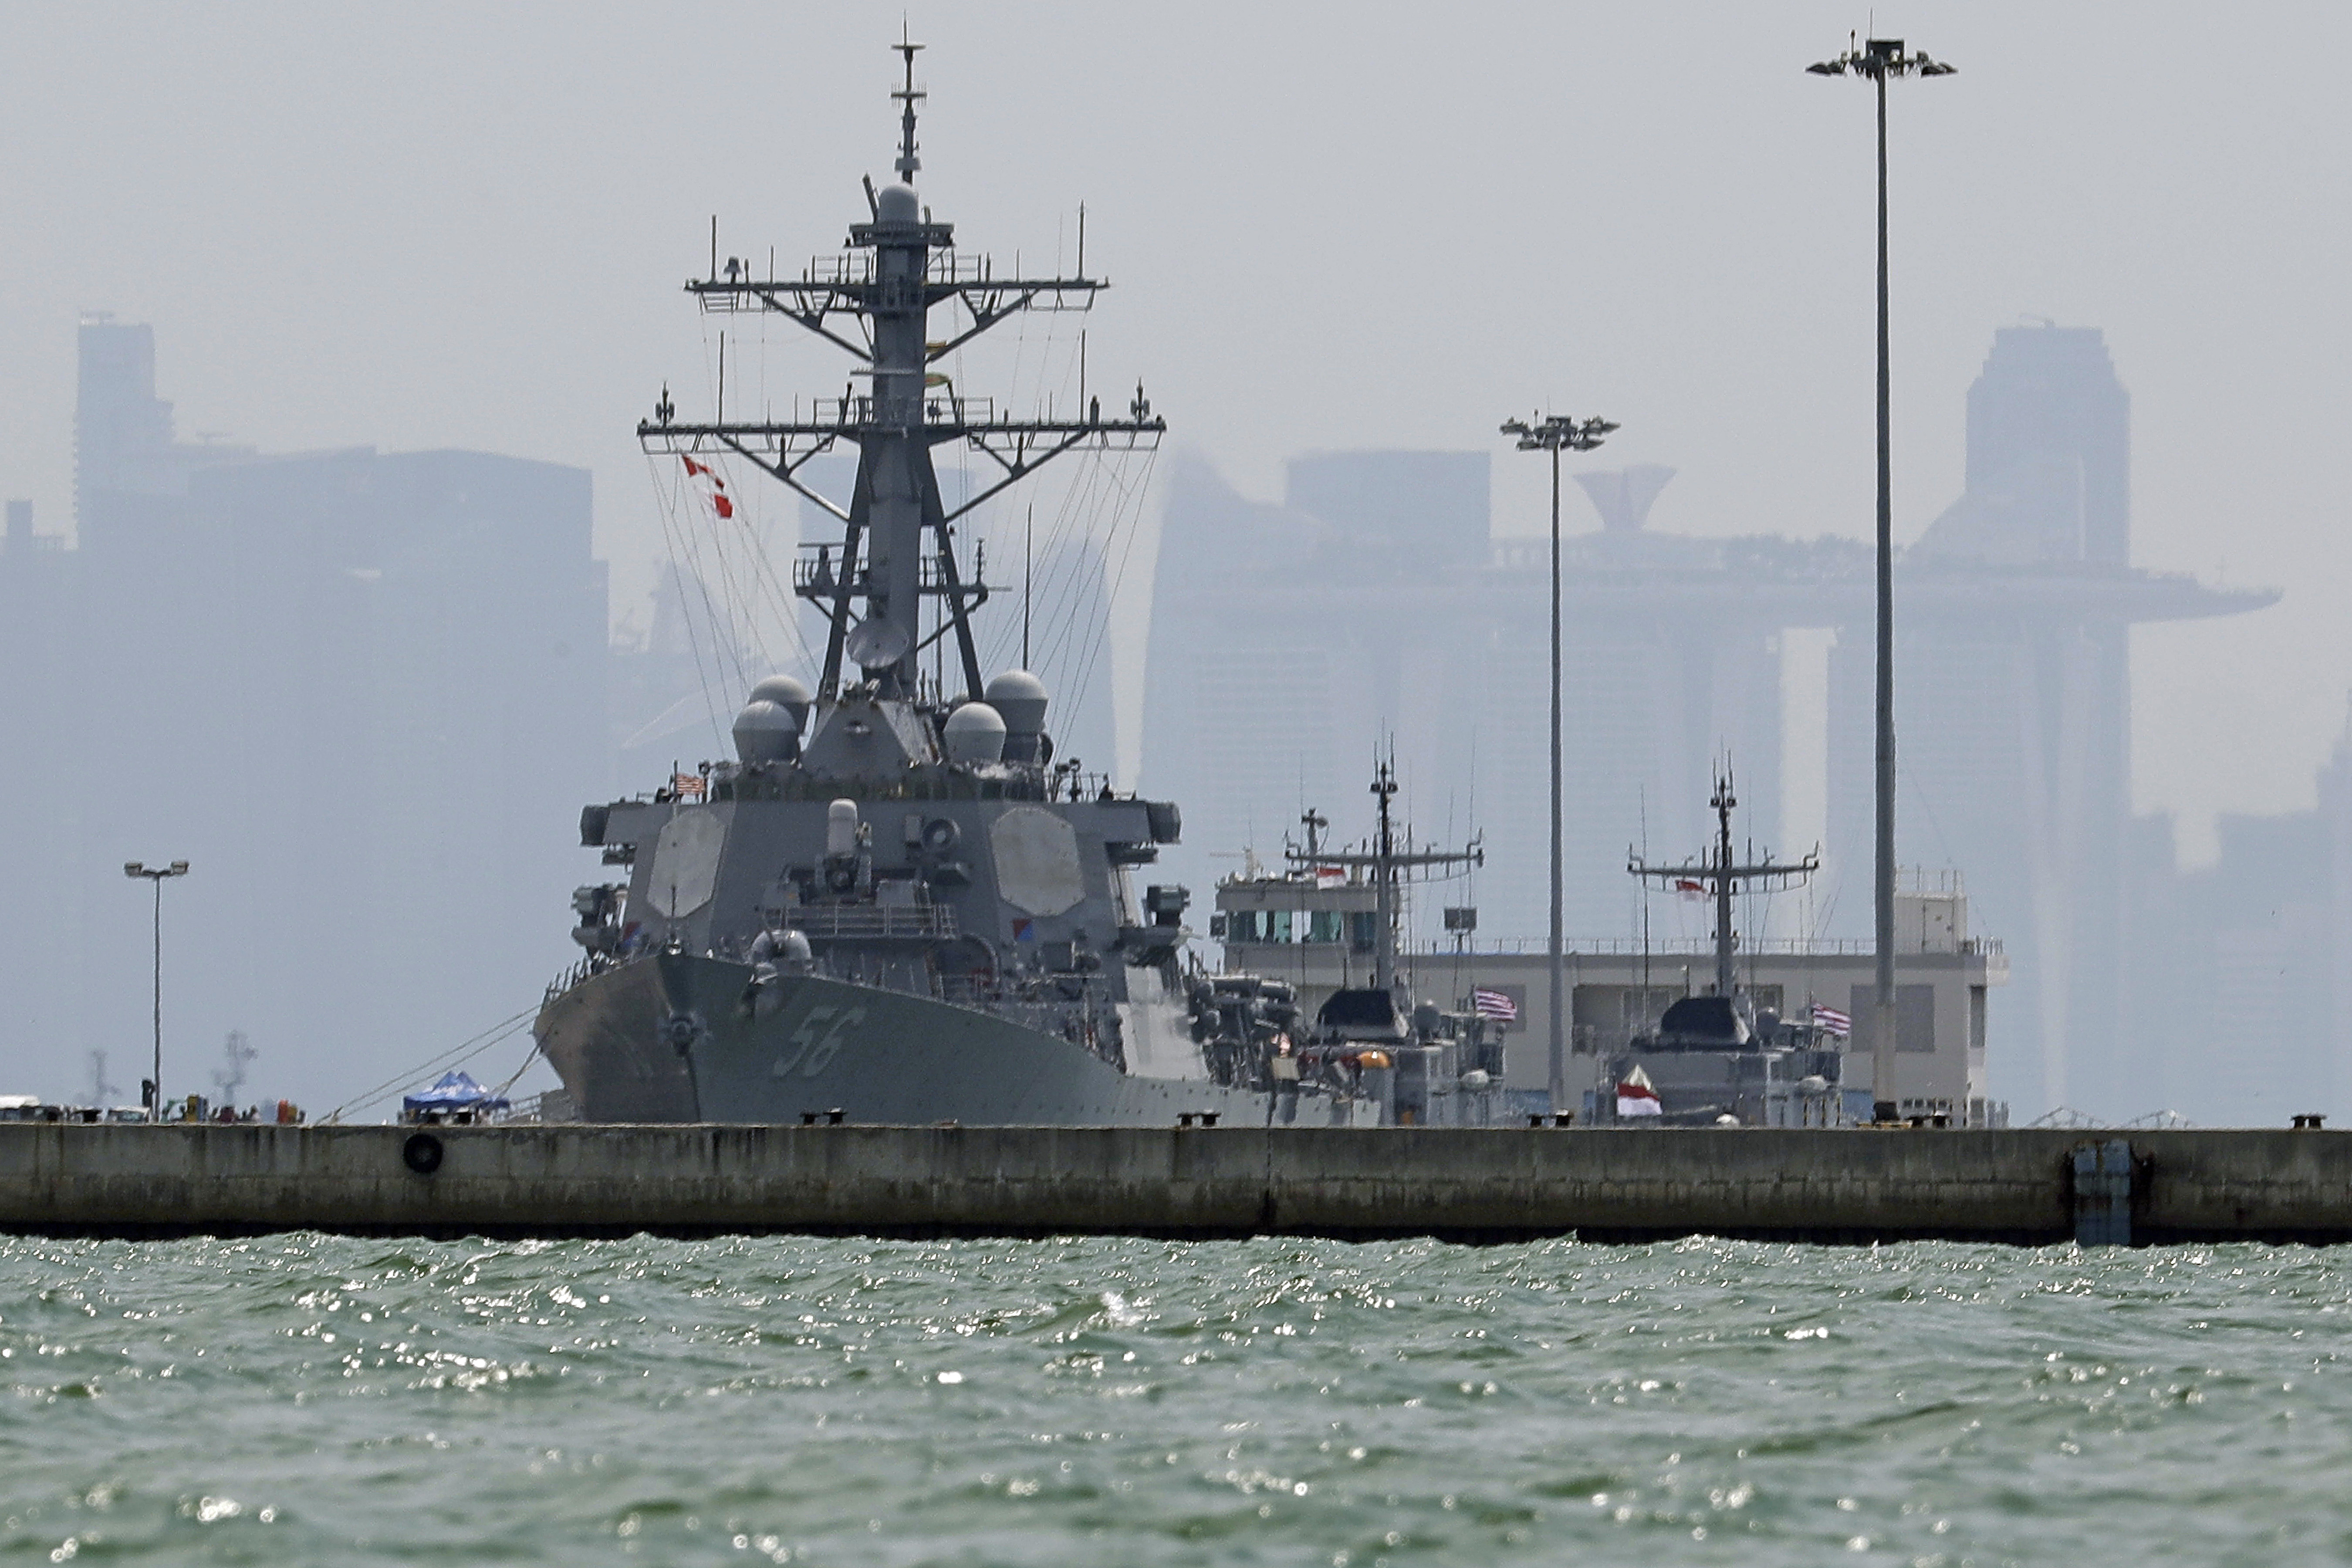 """Singapore US Navy Ship Collision-2 The USS John S. McCain is seen docked at Changi naval base after its accident on Monday, Aug. 21, 2017 in Singapore. The USS John S. McCain was docked at Singapore's naval base with """"significant damage"""" to its hull (blocked by berth) after an early morning collision with the oil tanker Alnic MC as vessels from several nations searched Monday for missing U.S. sailors. (AP Photo/Wong Maye-E)"""